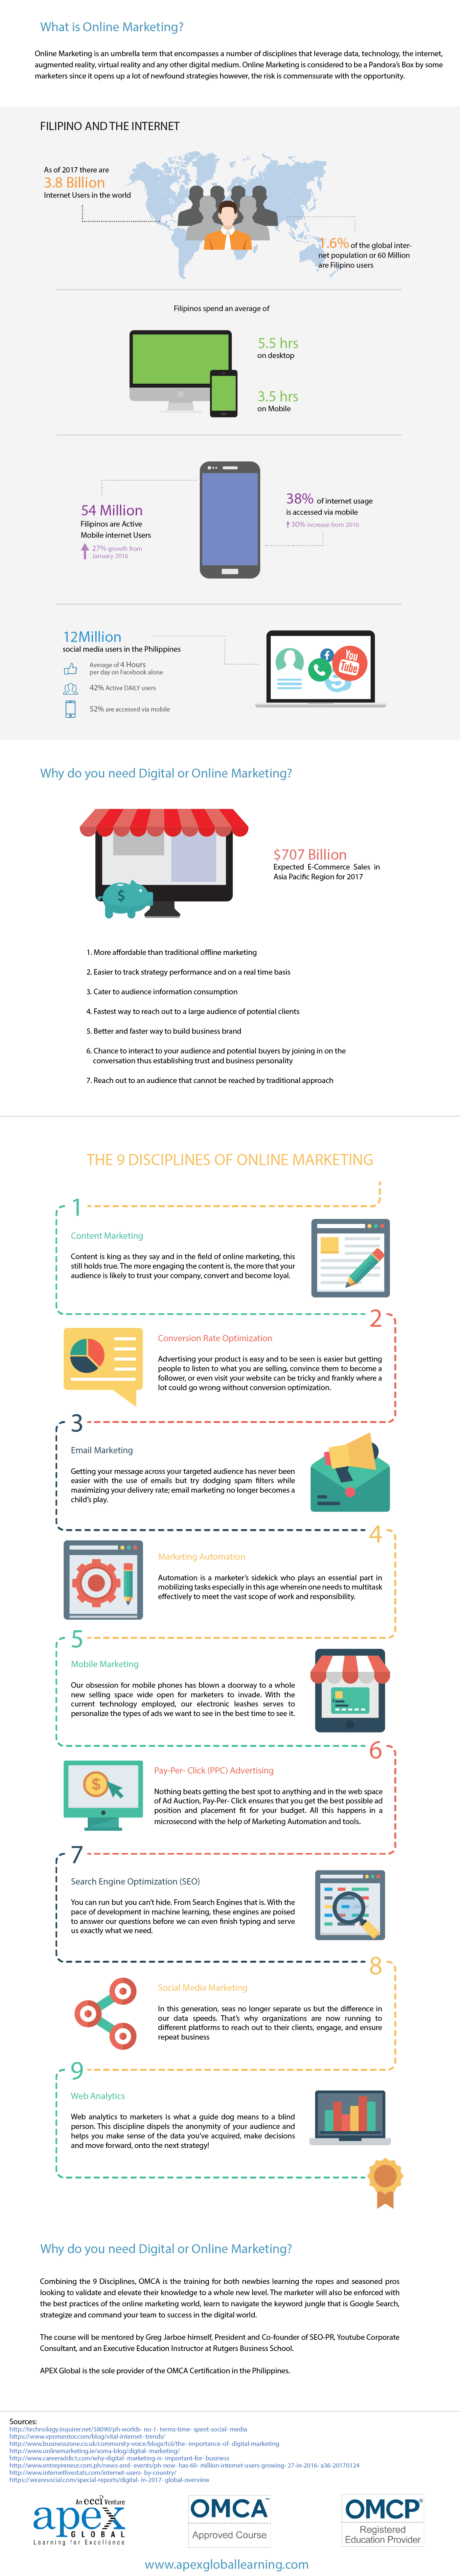 Philippines And The Rise Of Online Marketing - Infographic